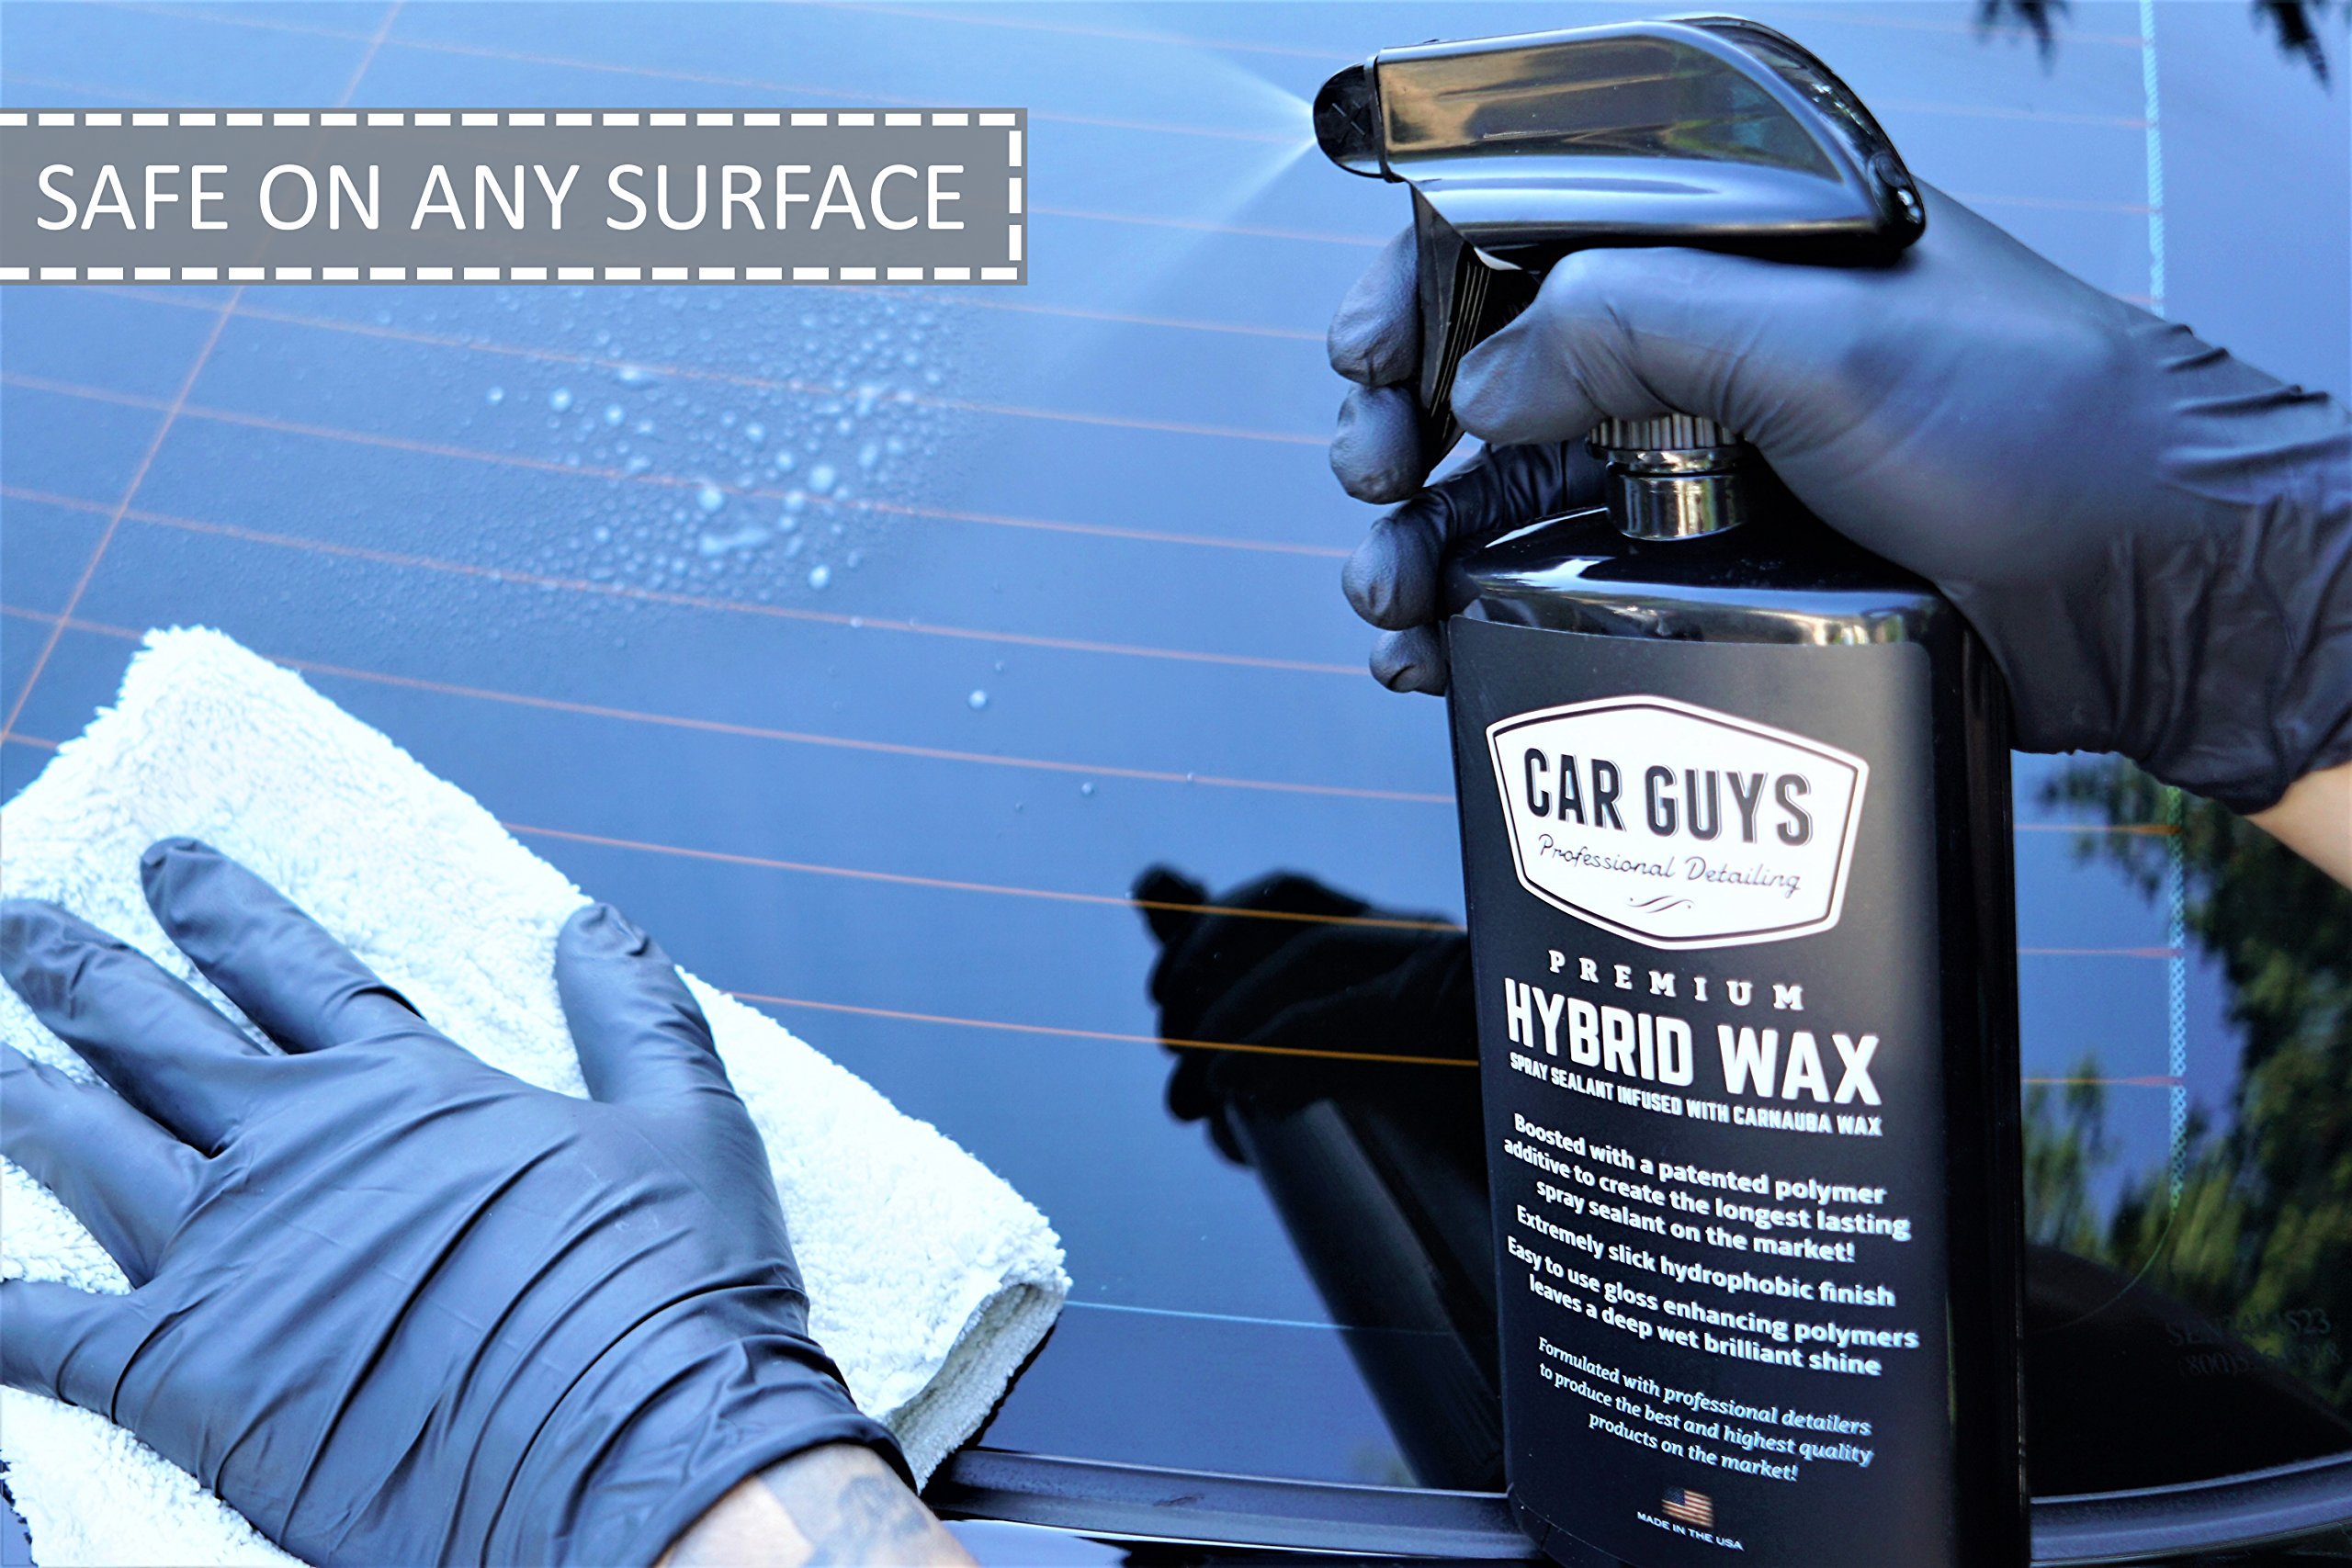 CarGuys Hybrid Wax Sealant - Top Coat Polish and Sealer - Infused with Liquid Carnauba for a Deep Hydrophobic Shine on All Types of Surfaces - 1 Gallon Bulk Refill by CarGuys (Image #4)